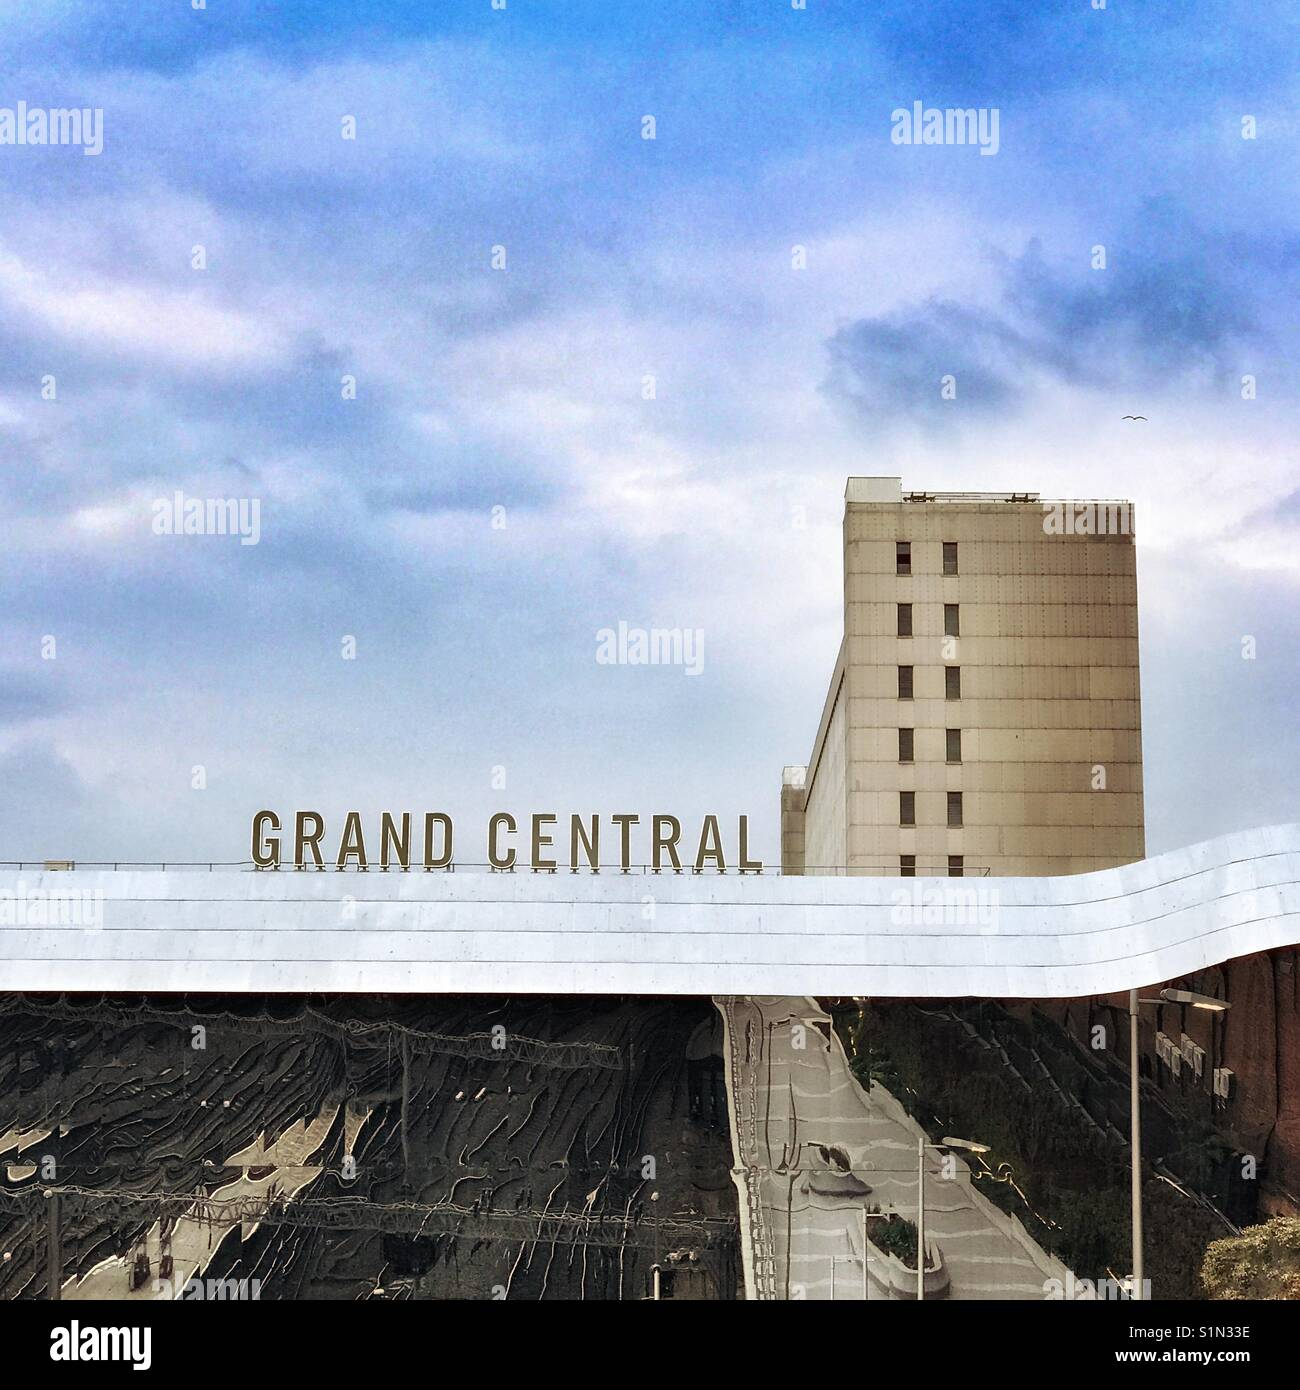 Grand Central train station formerly known as New Street Station, Birmingham, UK - Stock Image